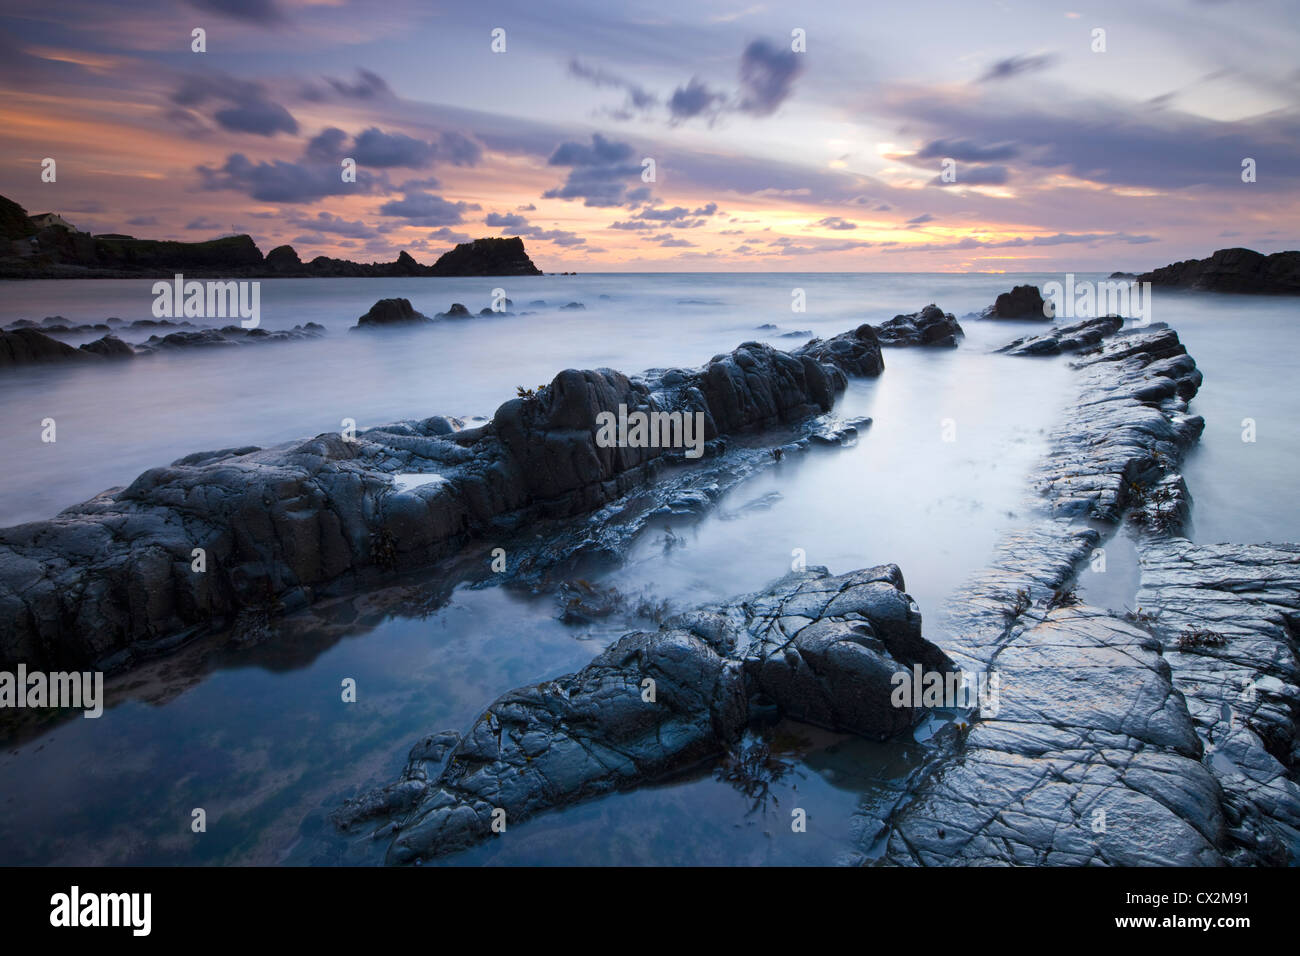 Hartland Quay at dusk from the rocky Quay Beach, North Devon, England. Autumn (September) 2010. - Stock Image